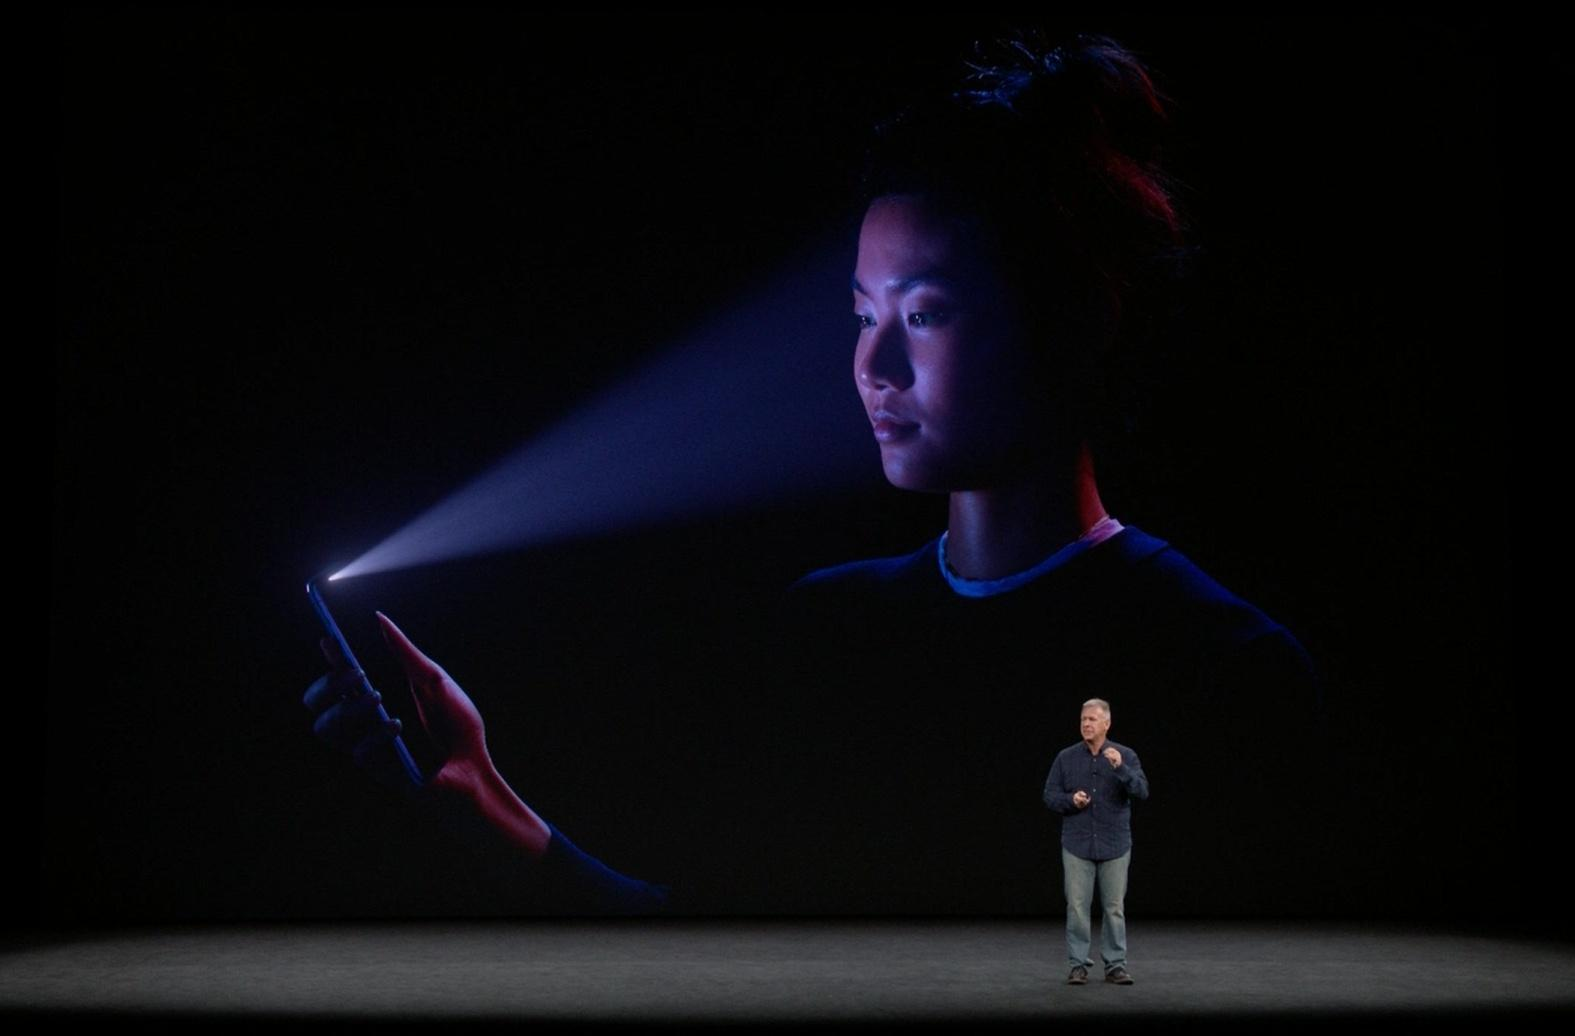 face-id-dystopia